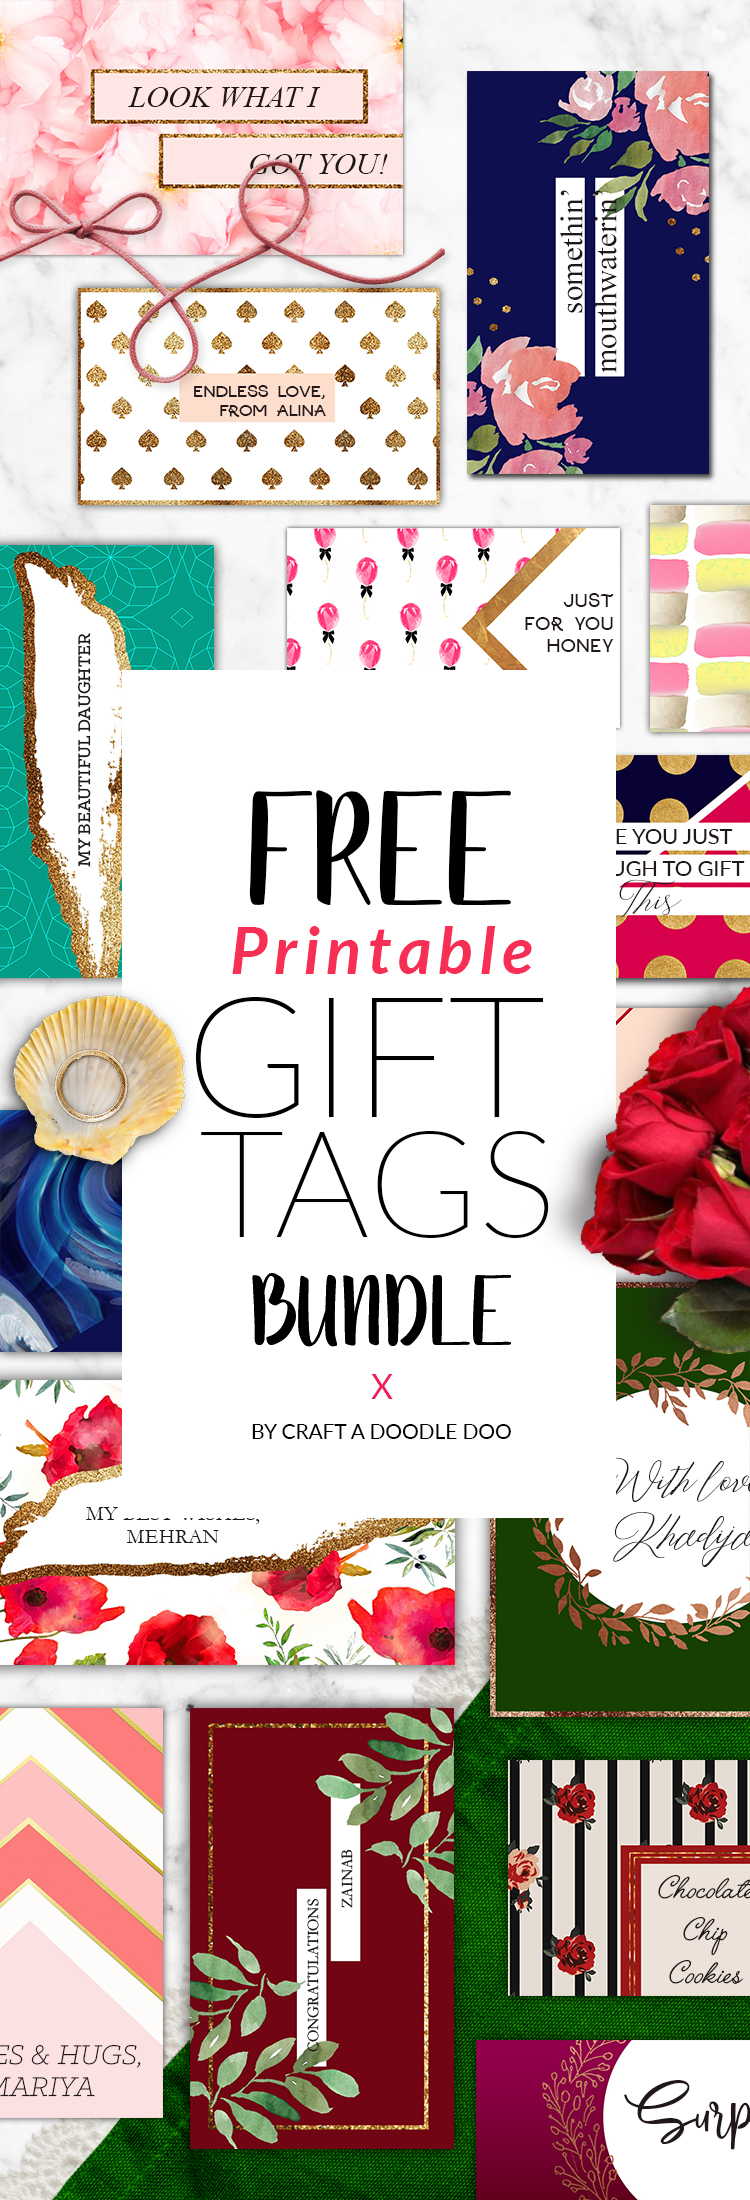 FREE PRINTABLE GIFT TAGS BY CRAFT A DOODLE DOO #free #printable #gift #tags #holidays #parties #presents #party #decor #gifts #labels #organization